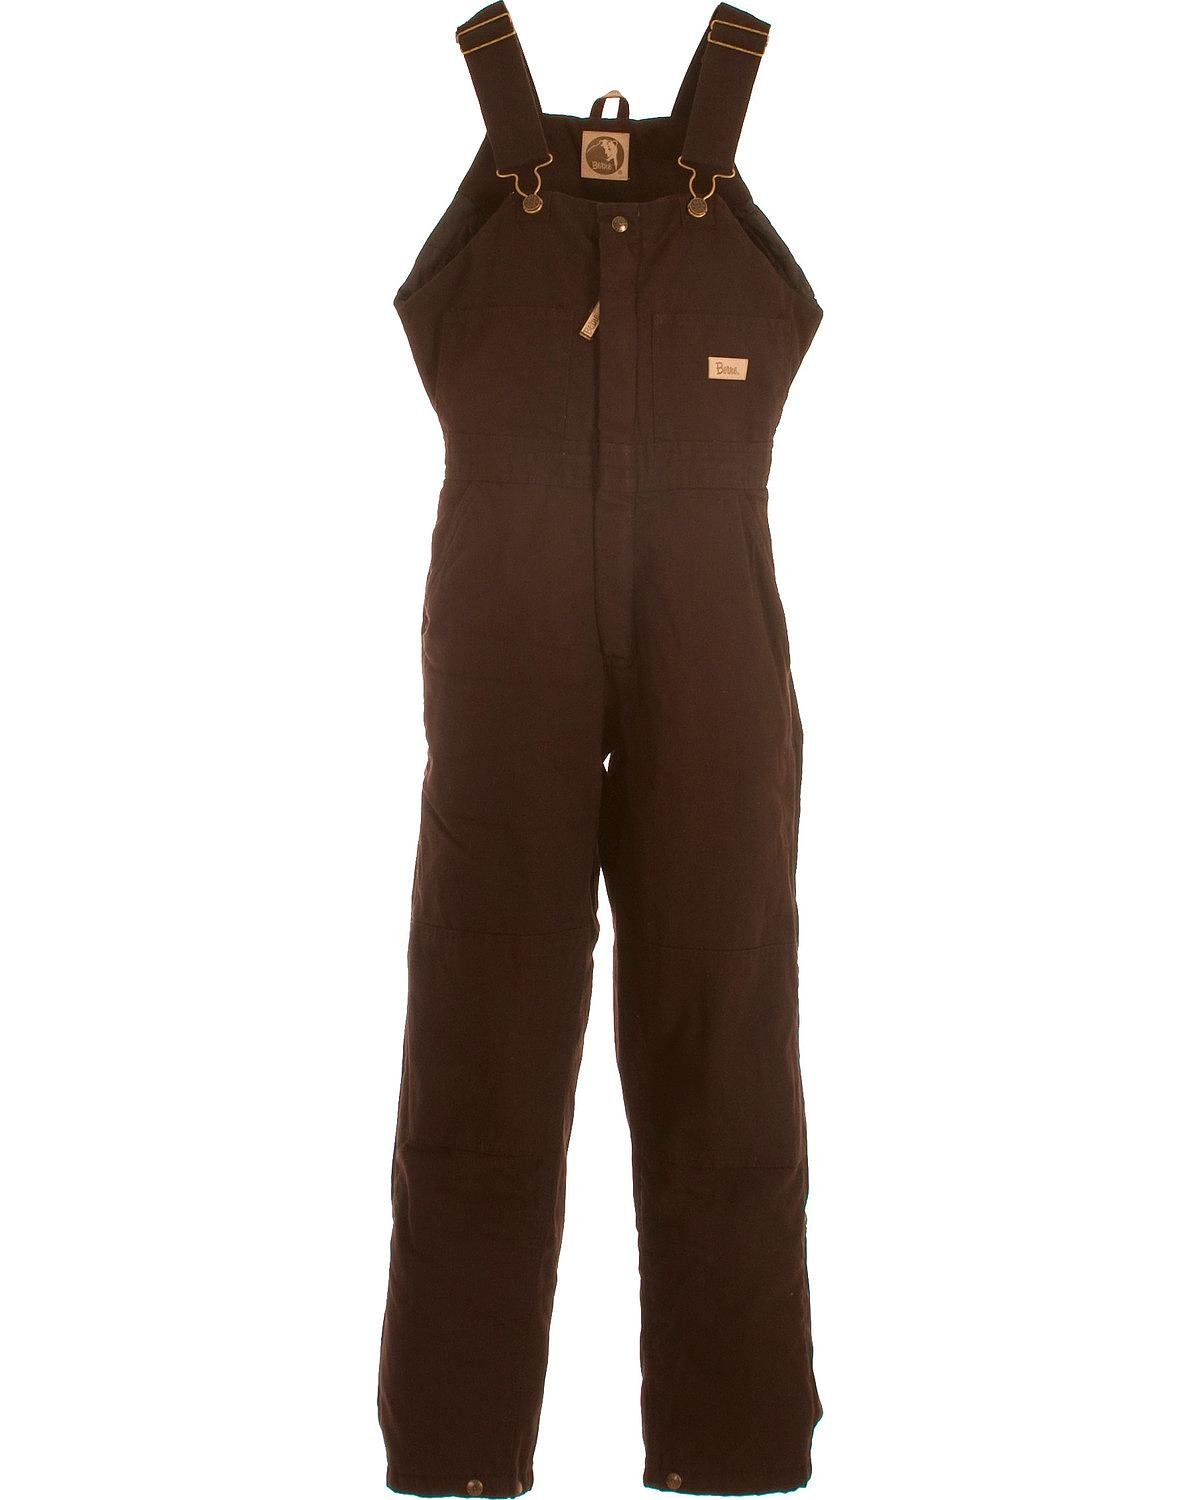 Berne Women's Washed Insulated Bib Overalls Short Dark Brown LS